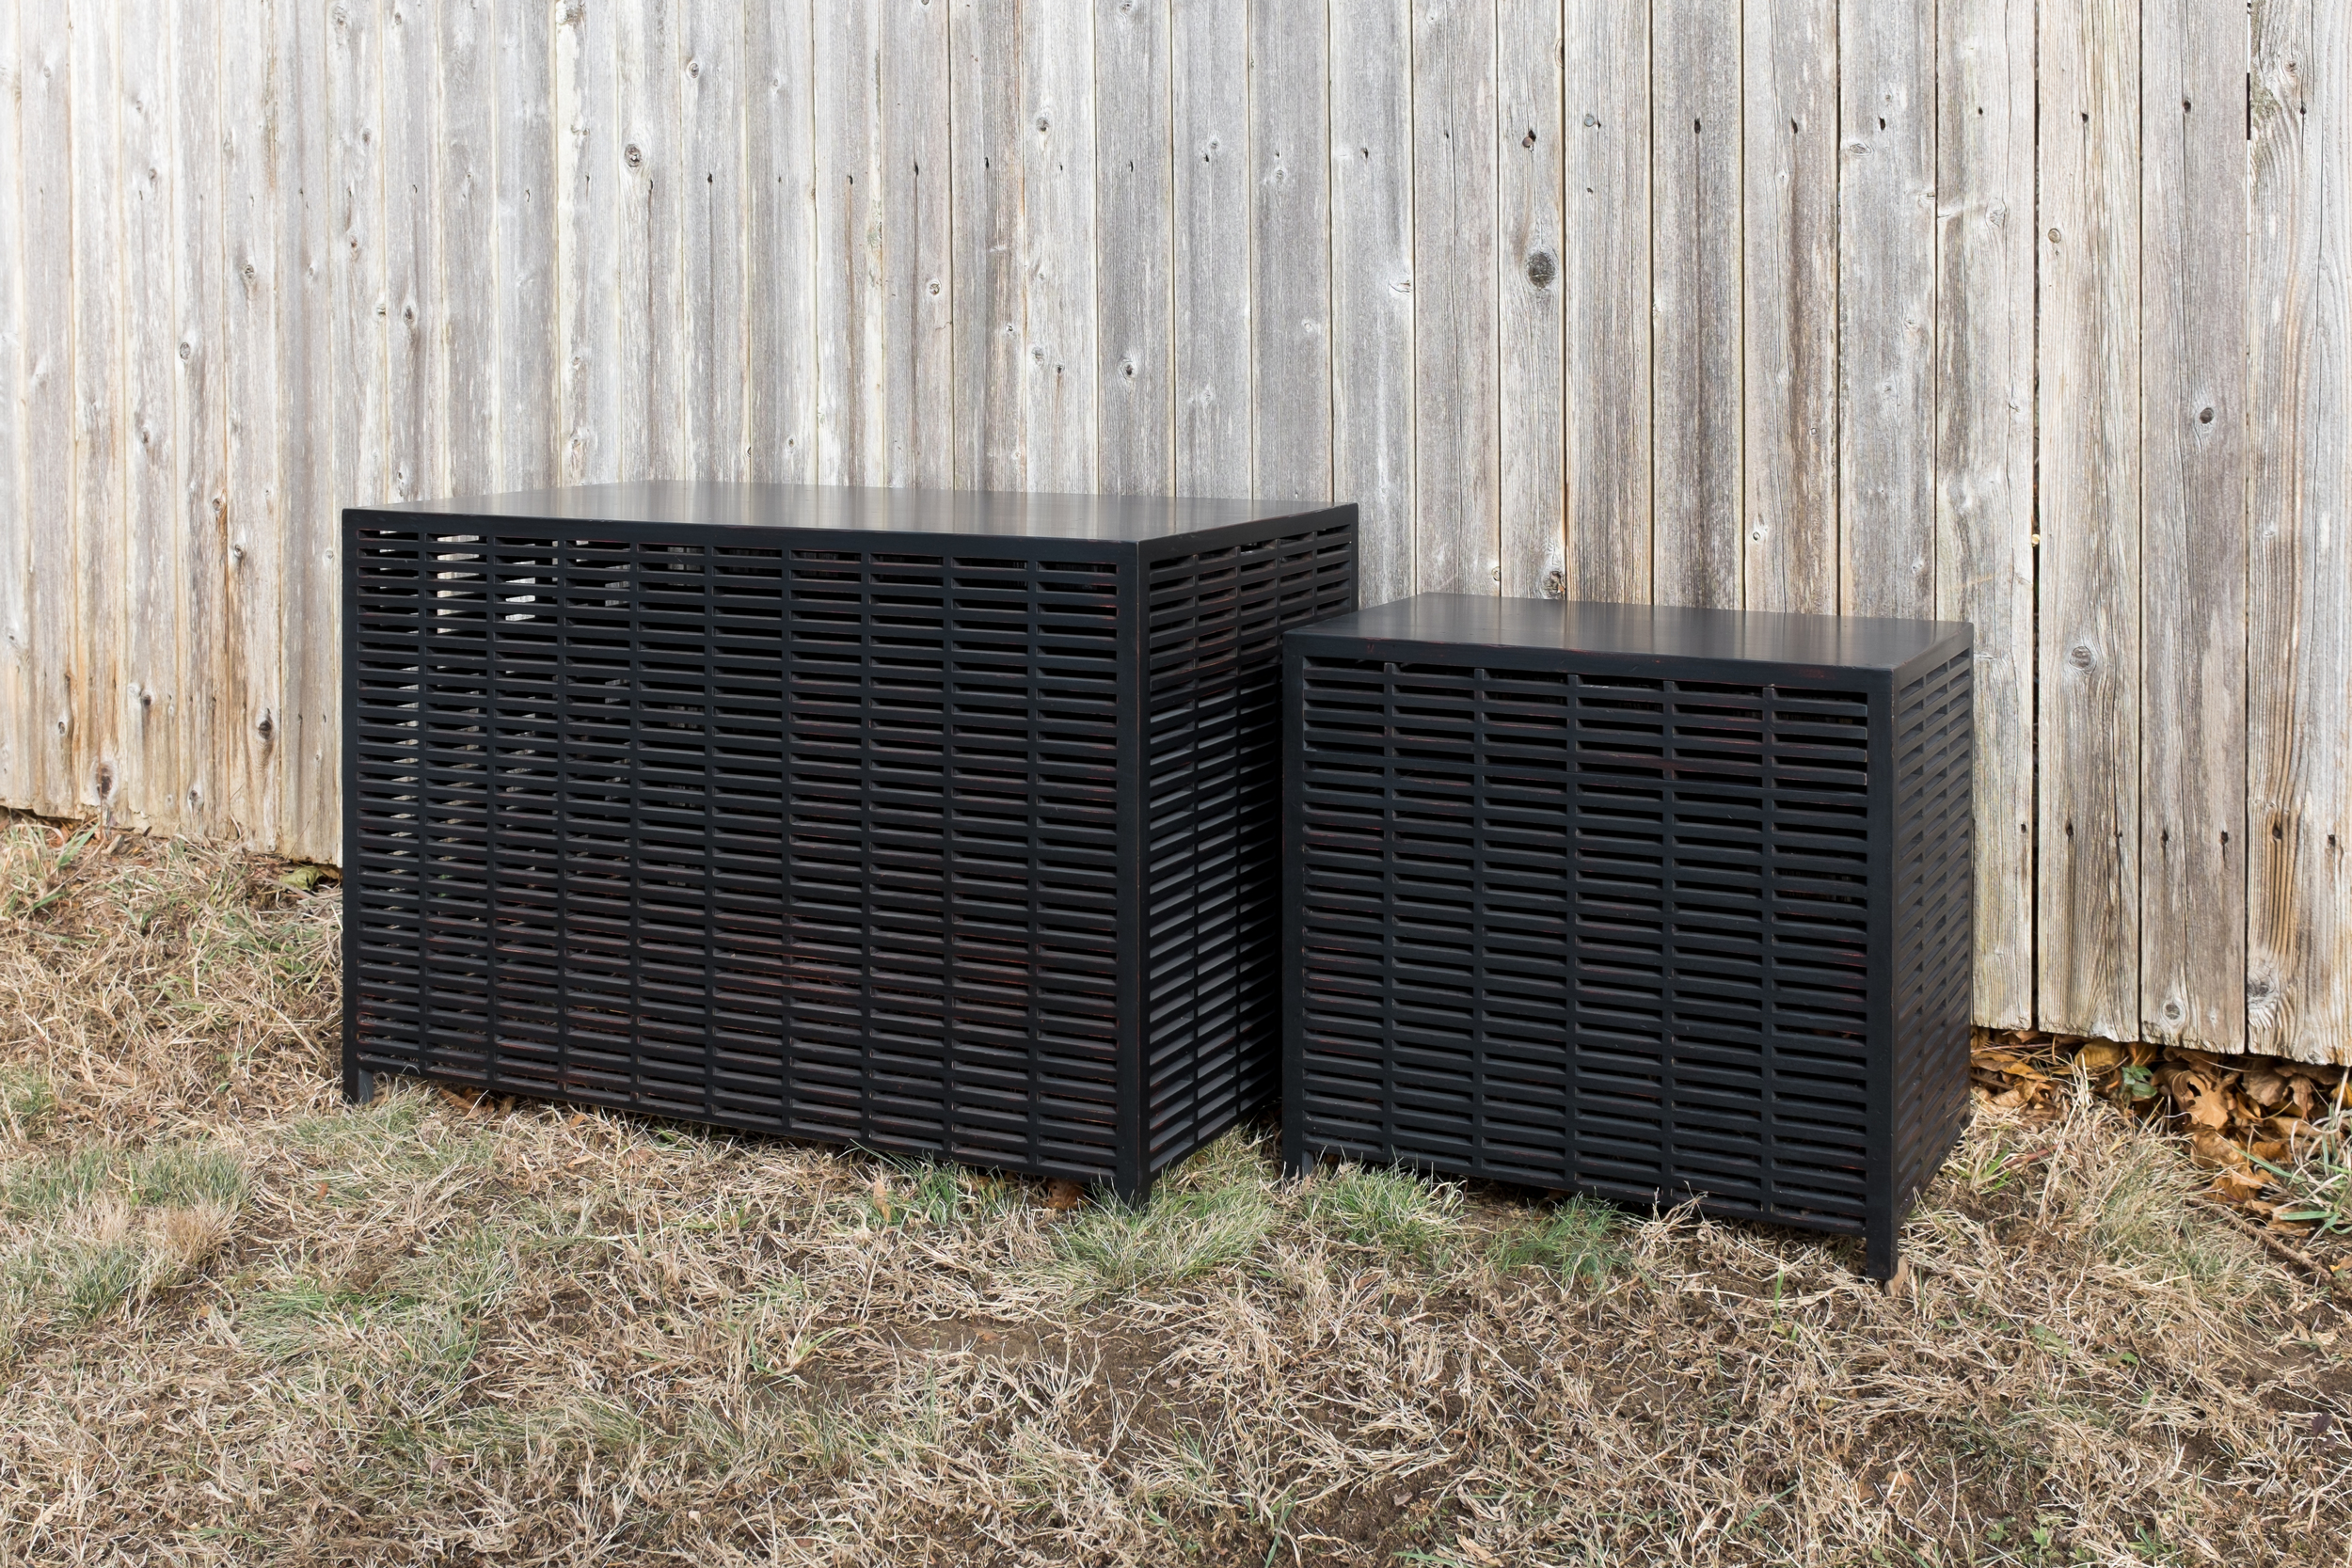 Lattice Subwoofer Cabinets